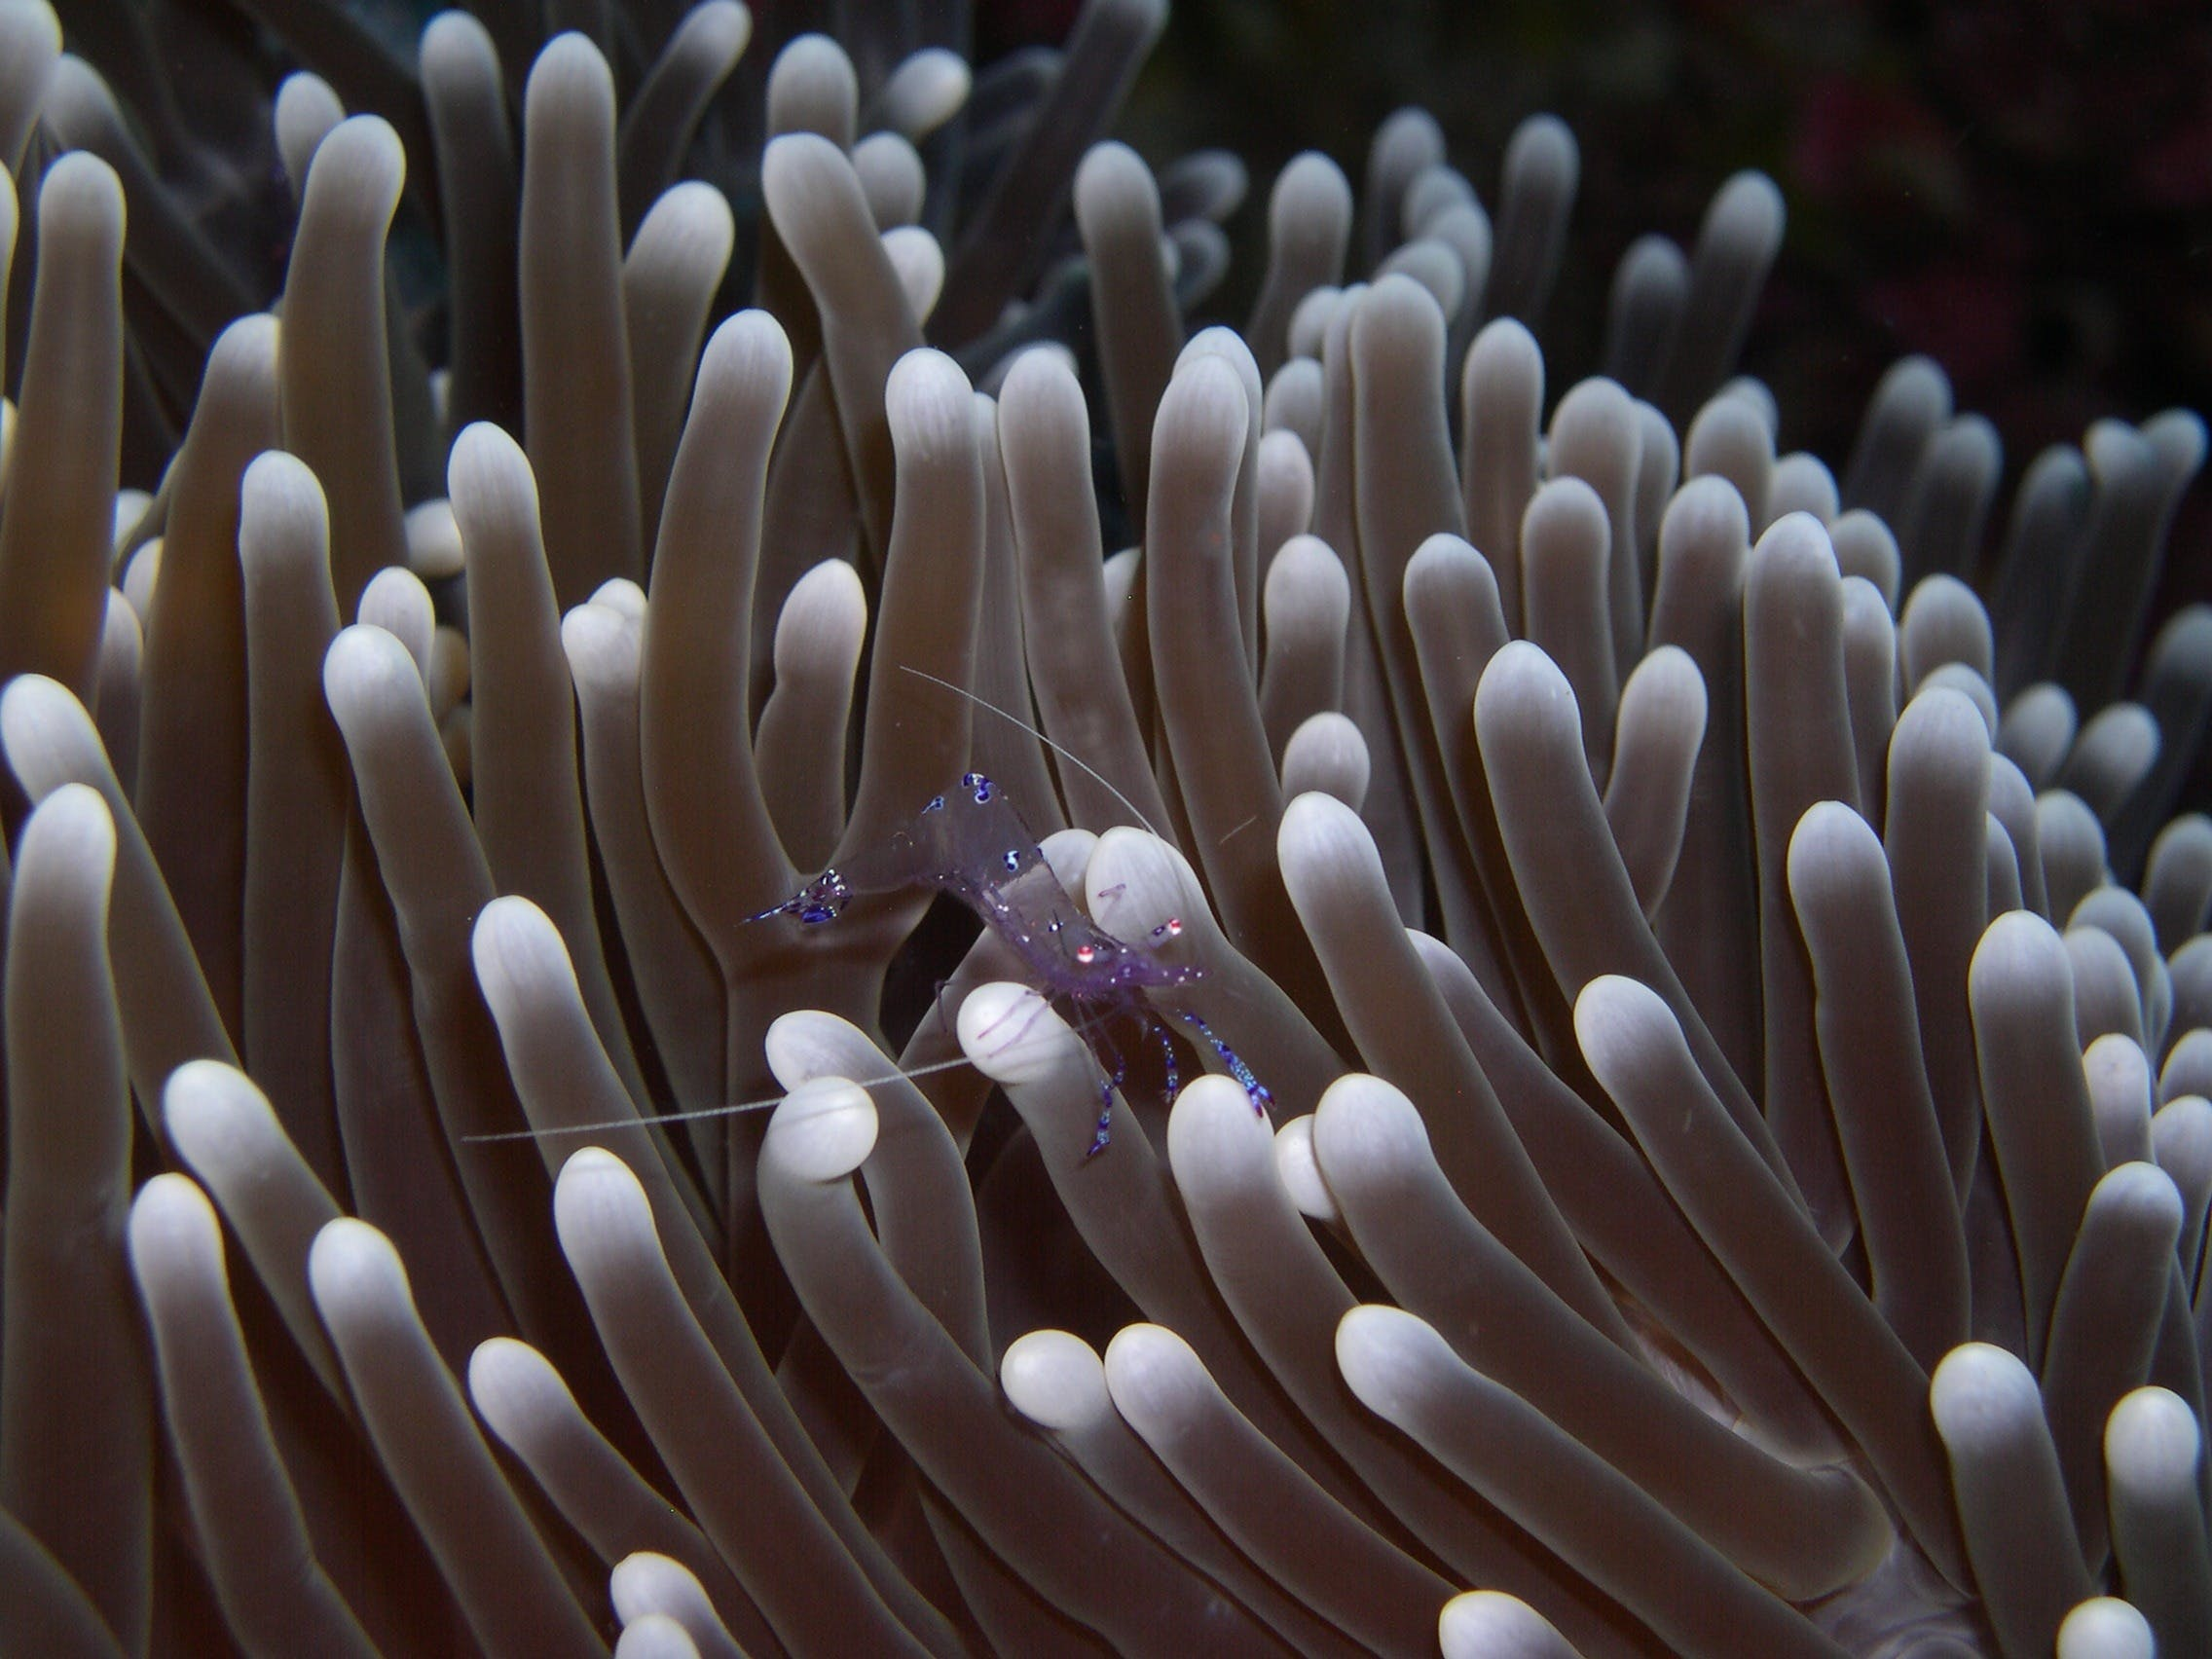 Shrimp on Sea Anemone